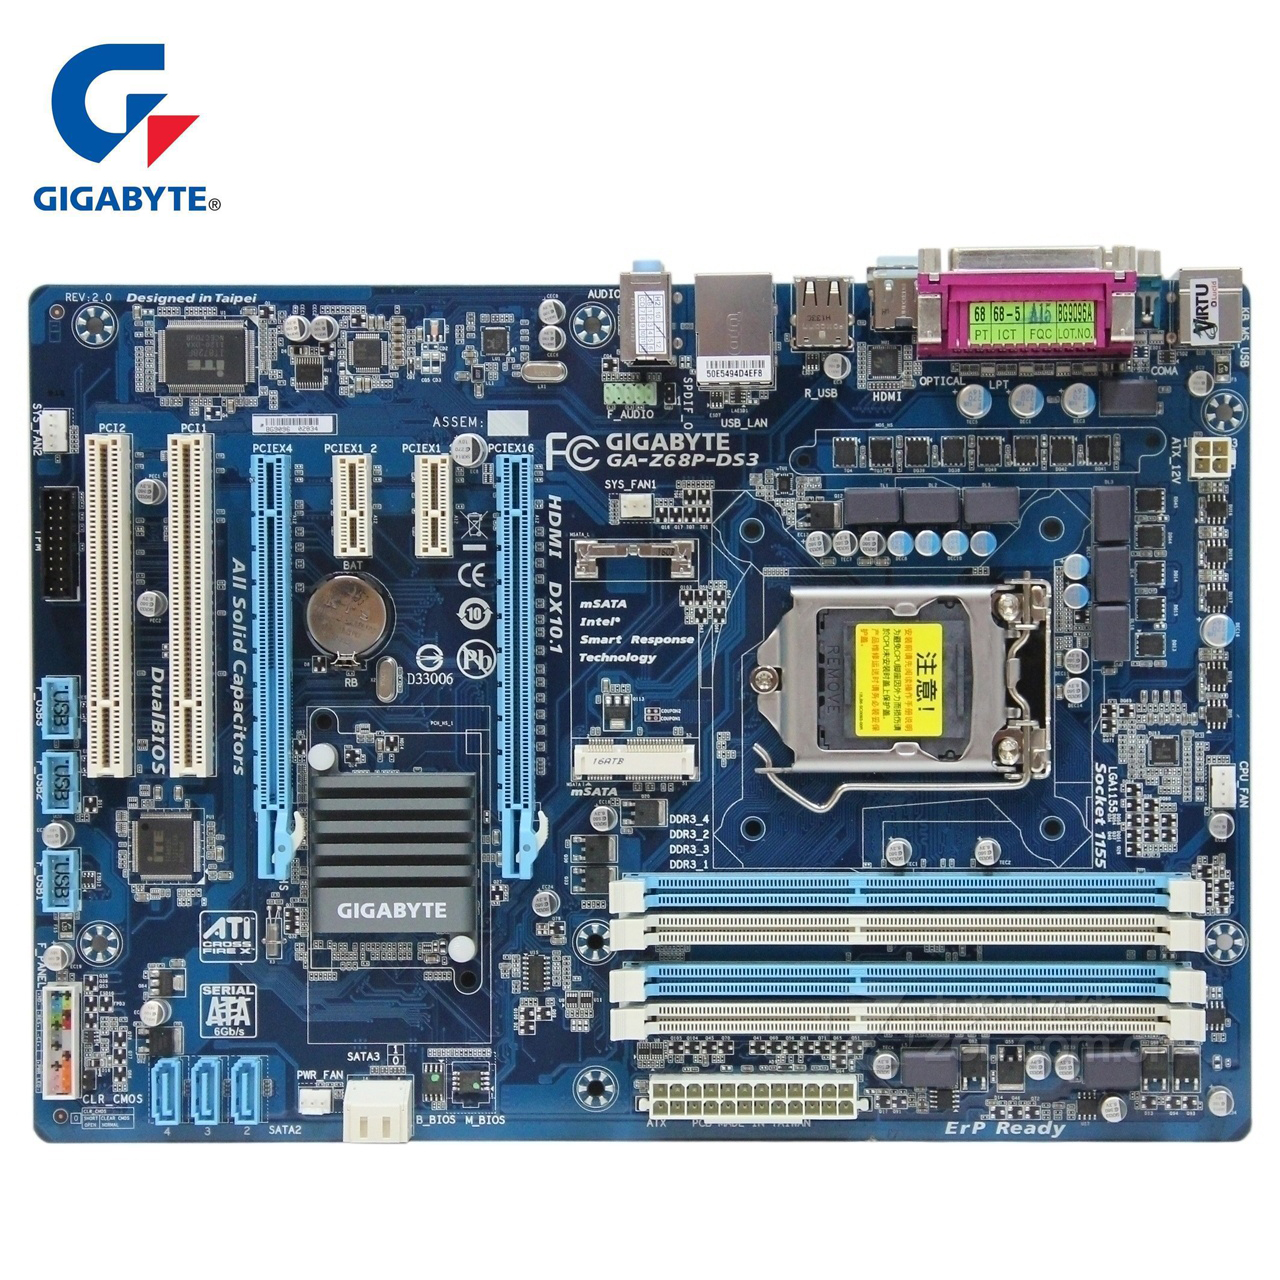 Gigabyte GA-Z68P-DS3 Original Motherboard LGA1155 DDR3 32G For Intel Z68 Z68P DS3 Desktop Mainboard SATA III II PCI-E 3.0 Boards gigabyte ga h61m s1 desktop motherboard h61 socket lga 1155 i3 i5 i7 ddr3 16g uatx uefi bios original h61m ds1 used mainboard